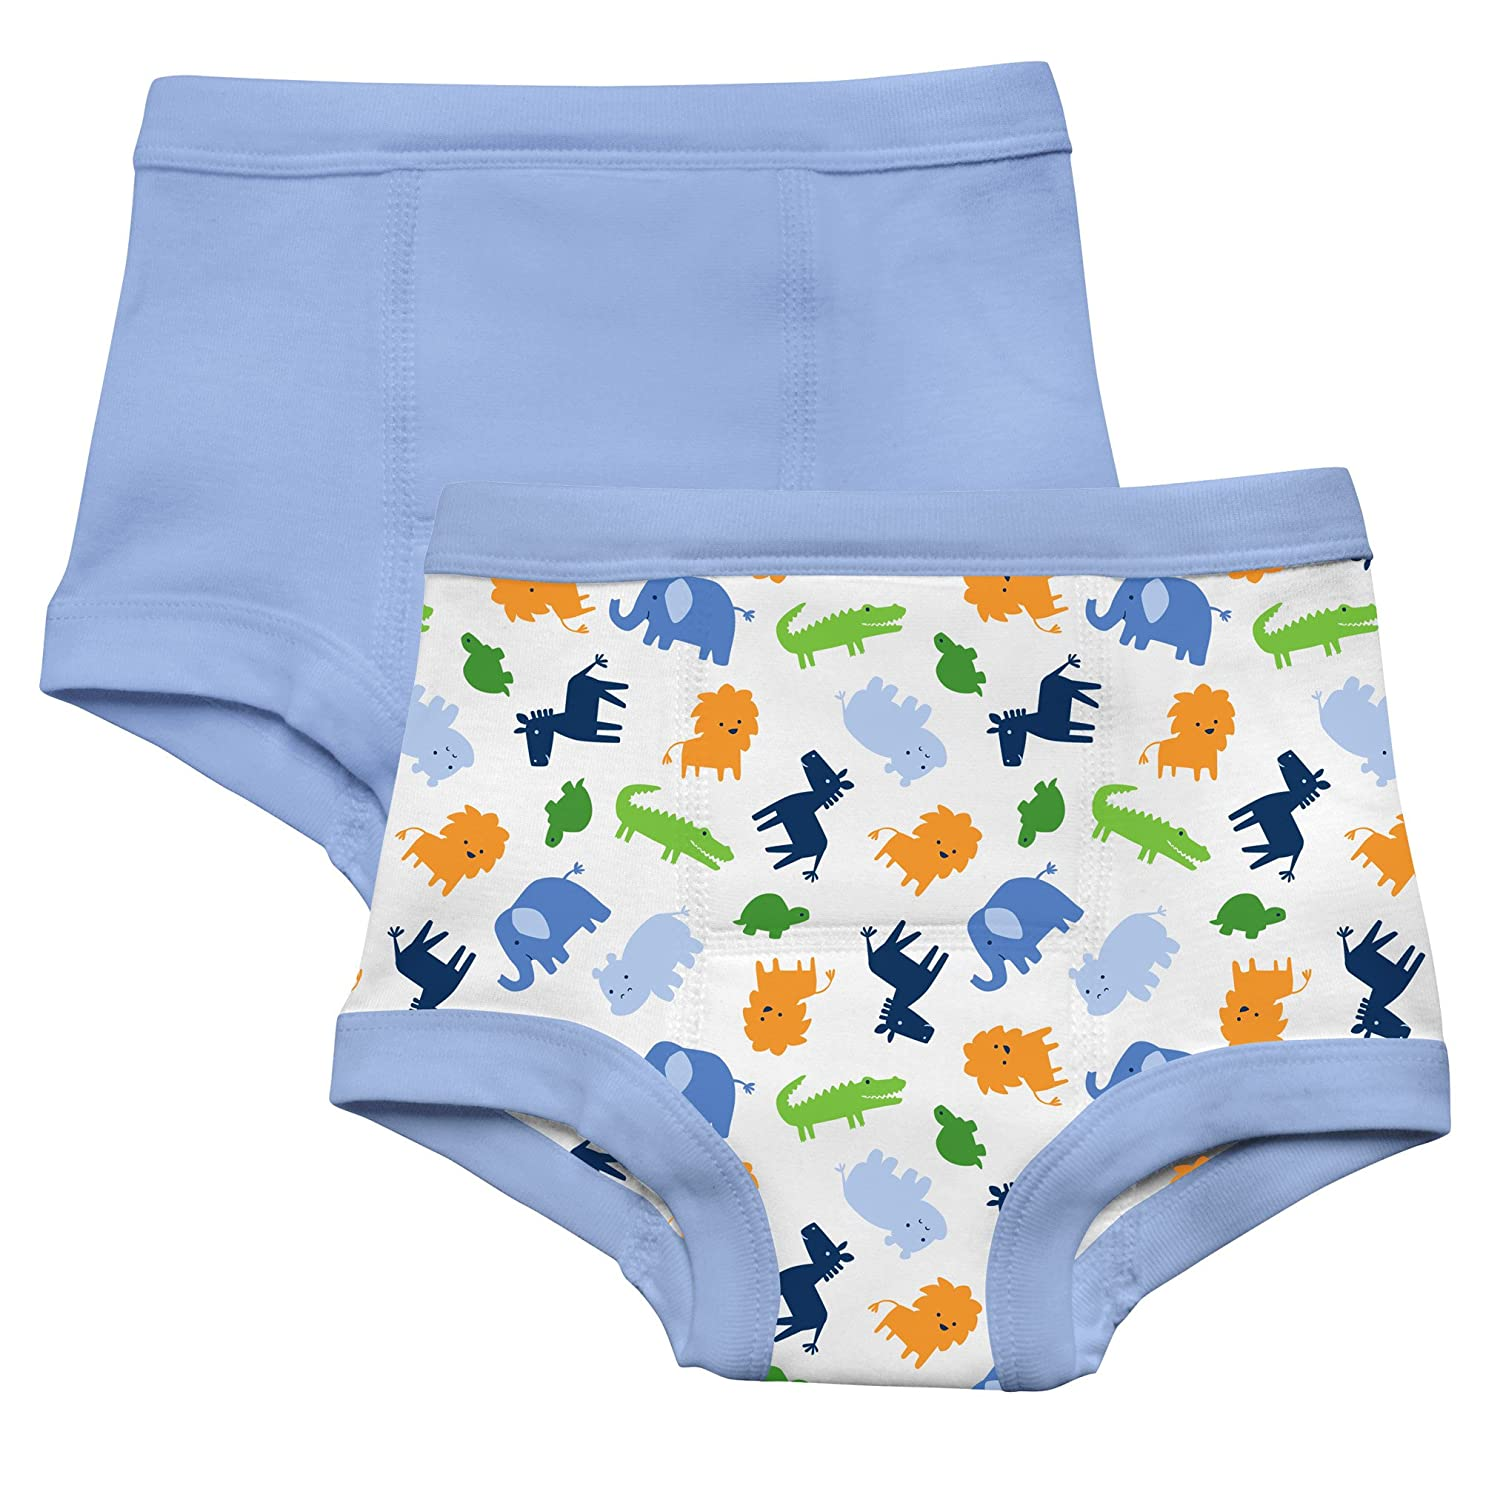 green sprouts by i play. Training Underwear, 2 Pack 107185unisex-baby